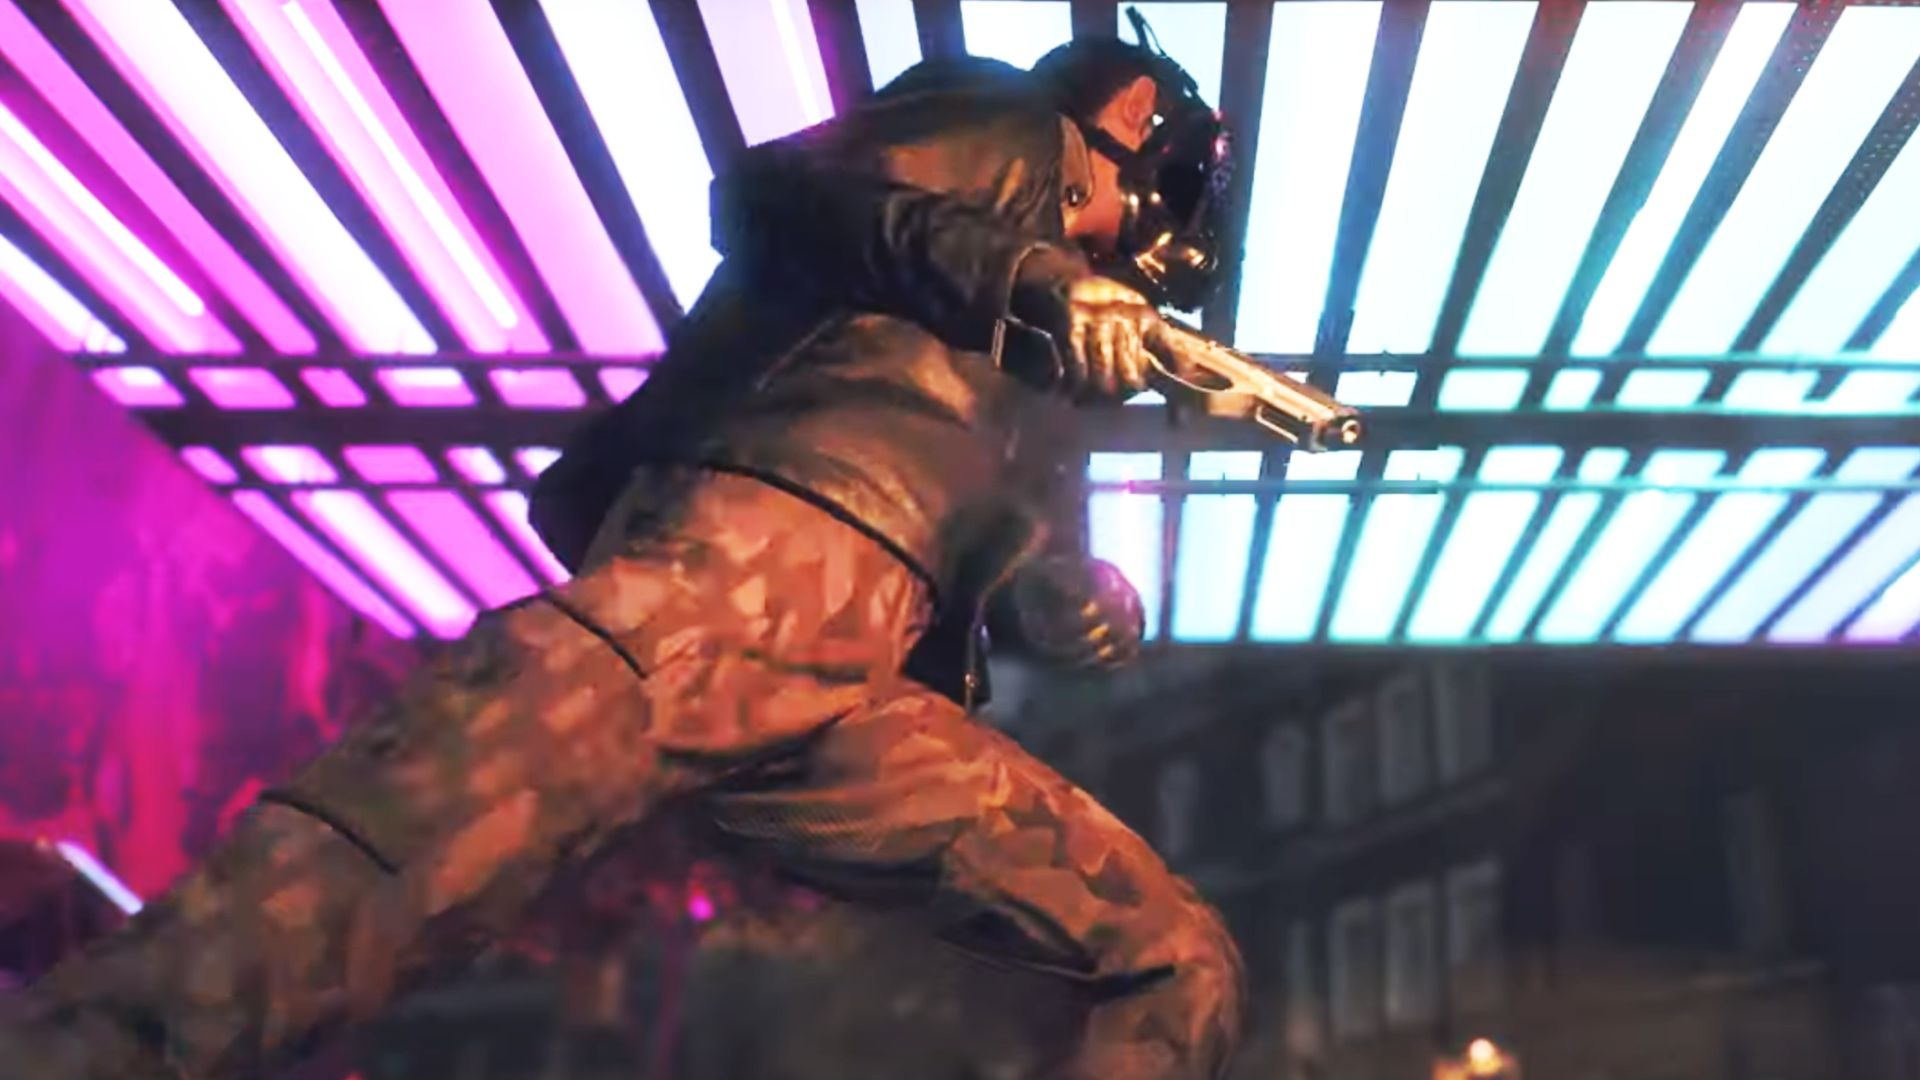 Watch Dogs Legion's system requirements might send you CPU shopping